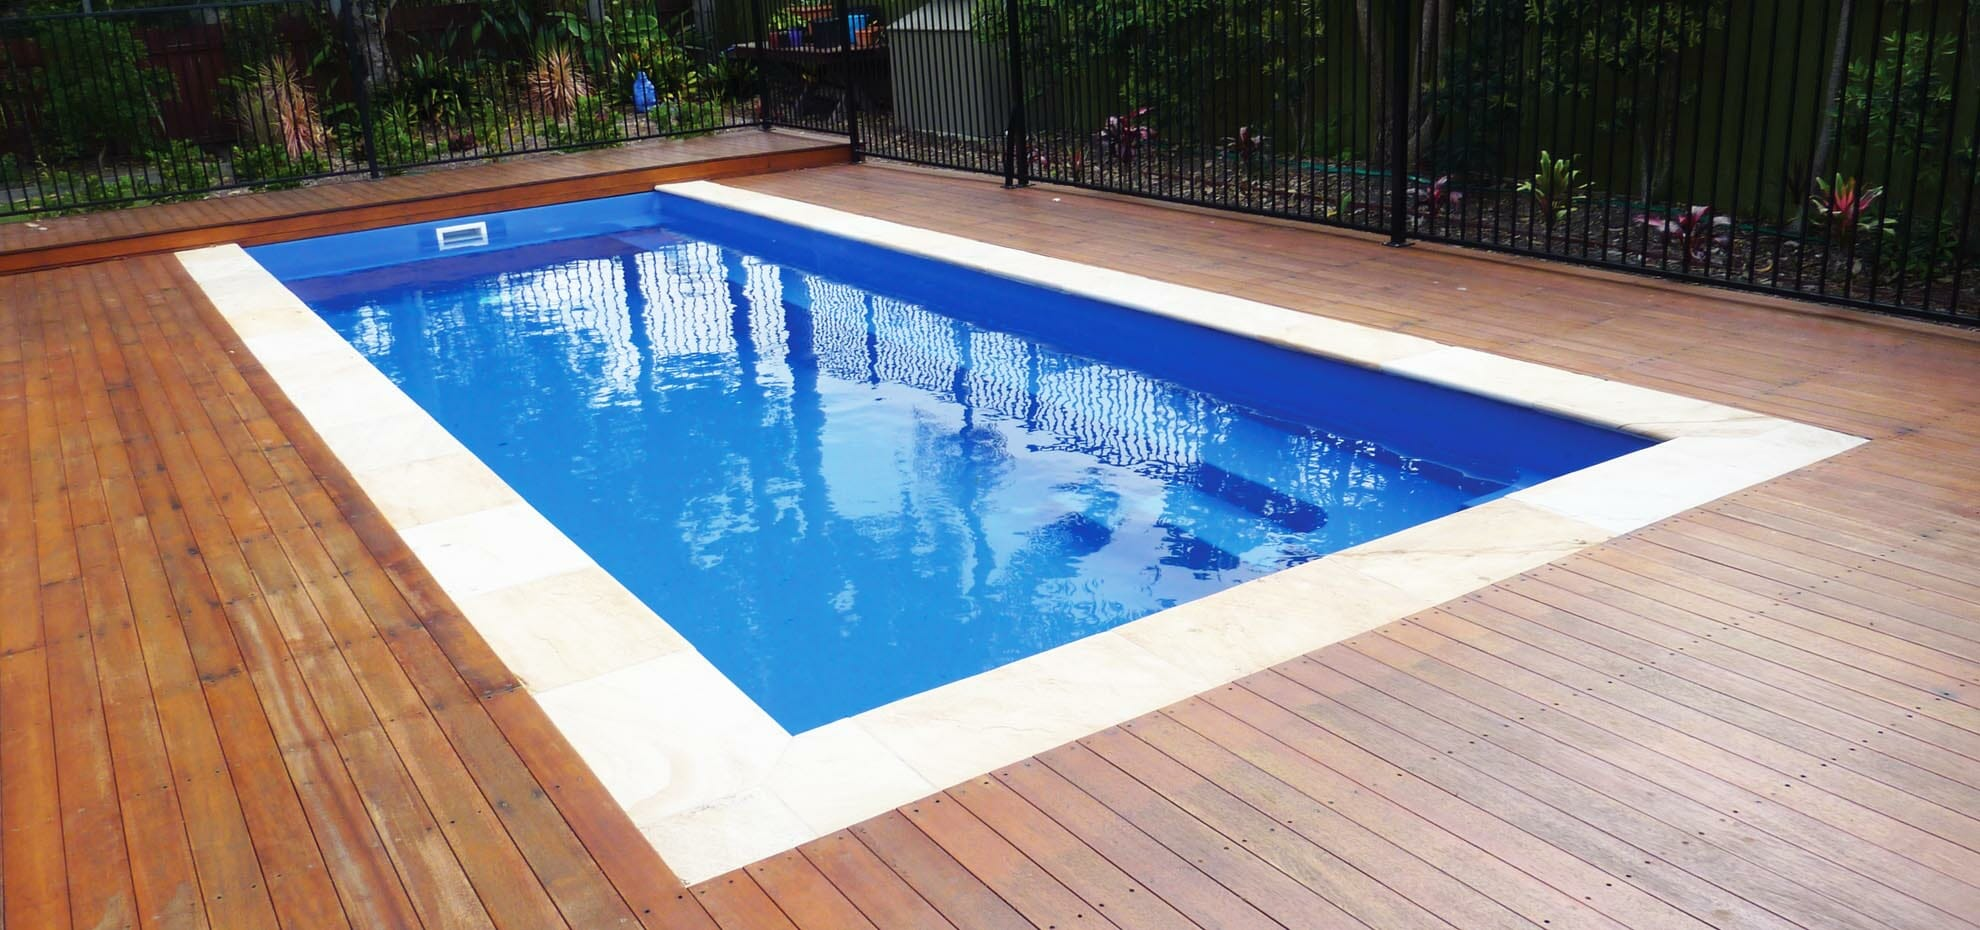 Harmony style fibreglass pool with coping by Leisure Pools